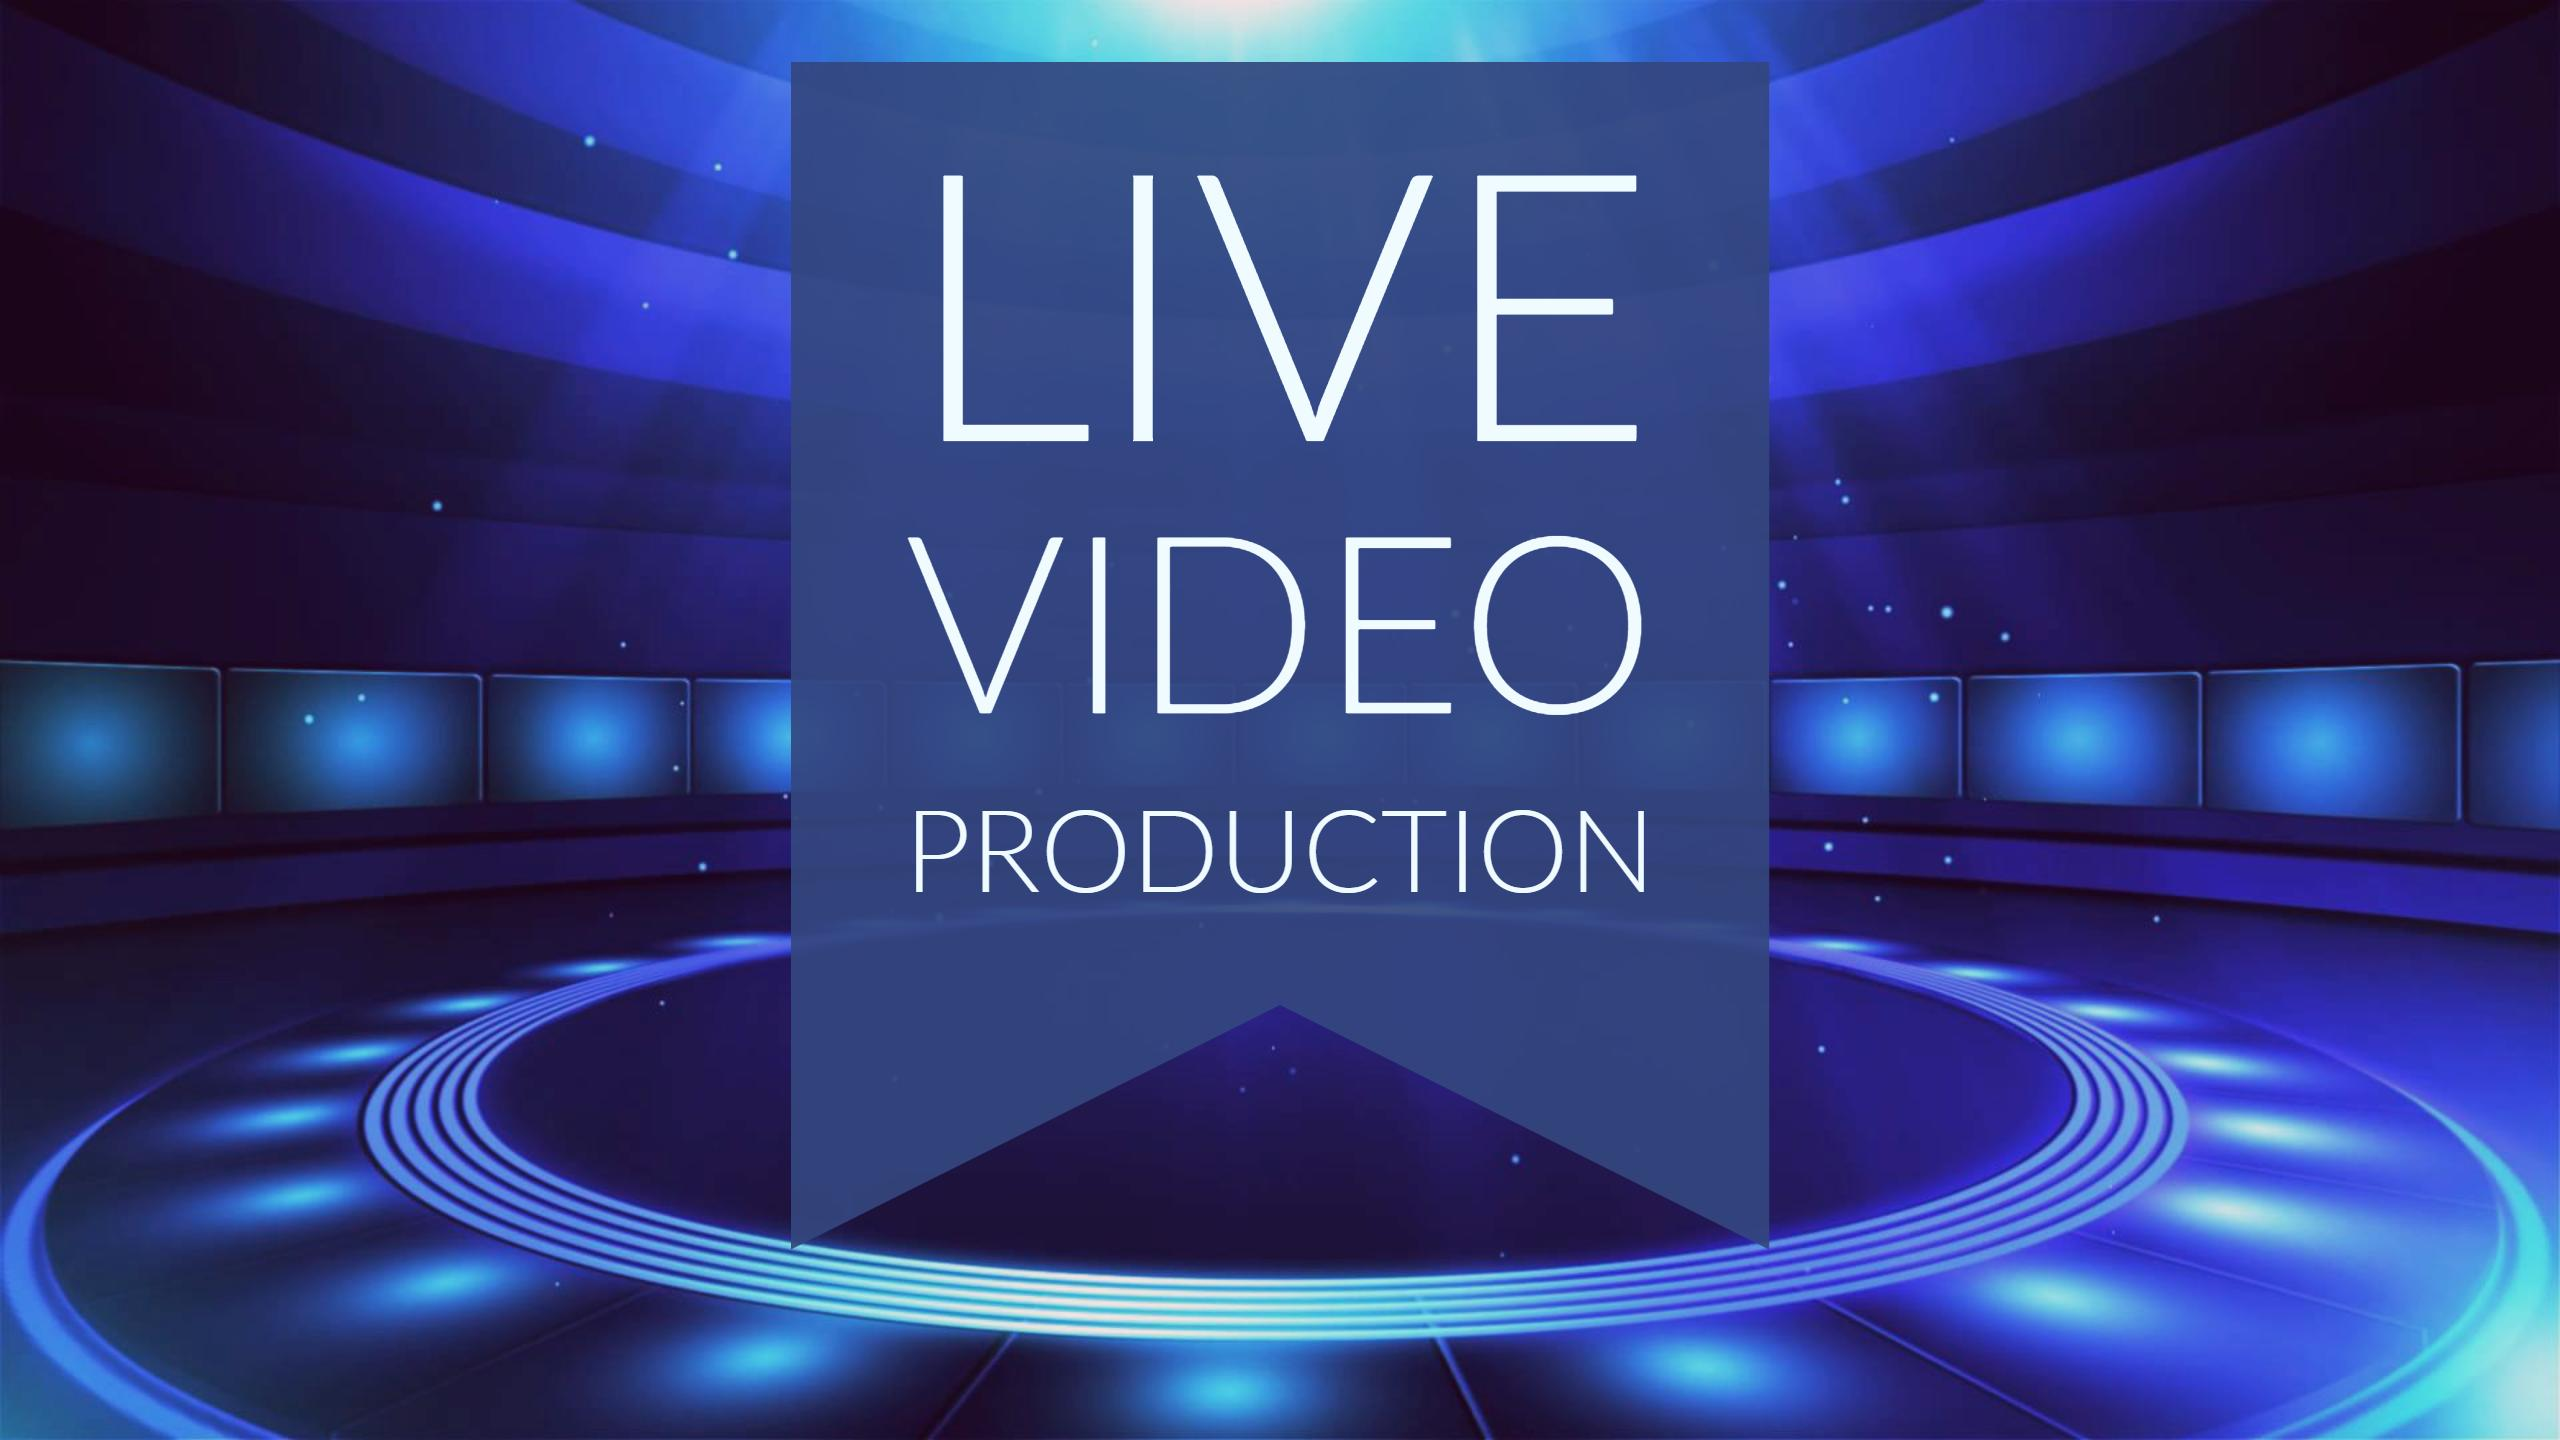 Live Video Production CTA